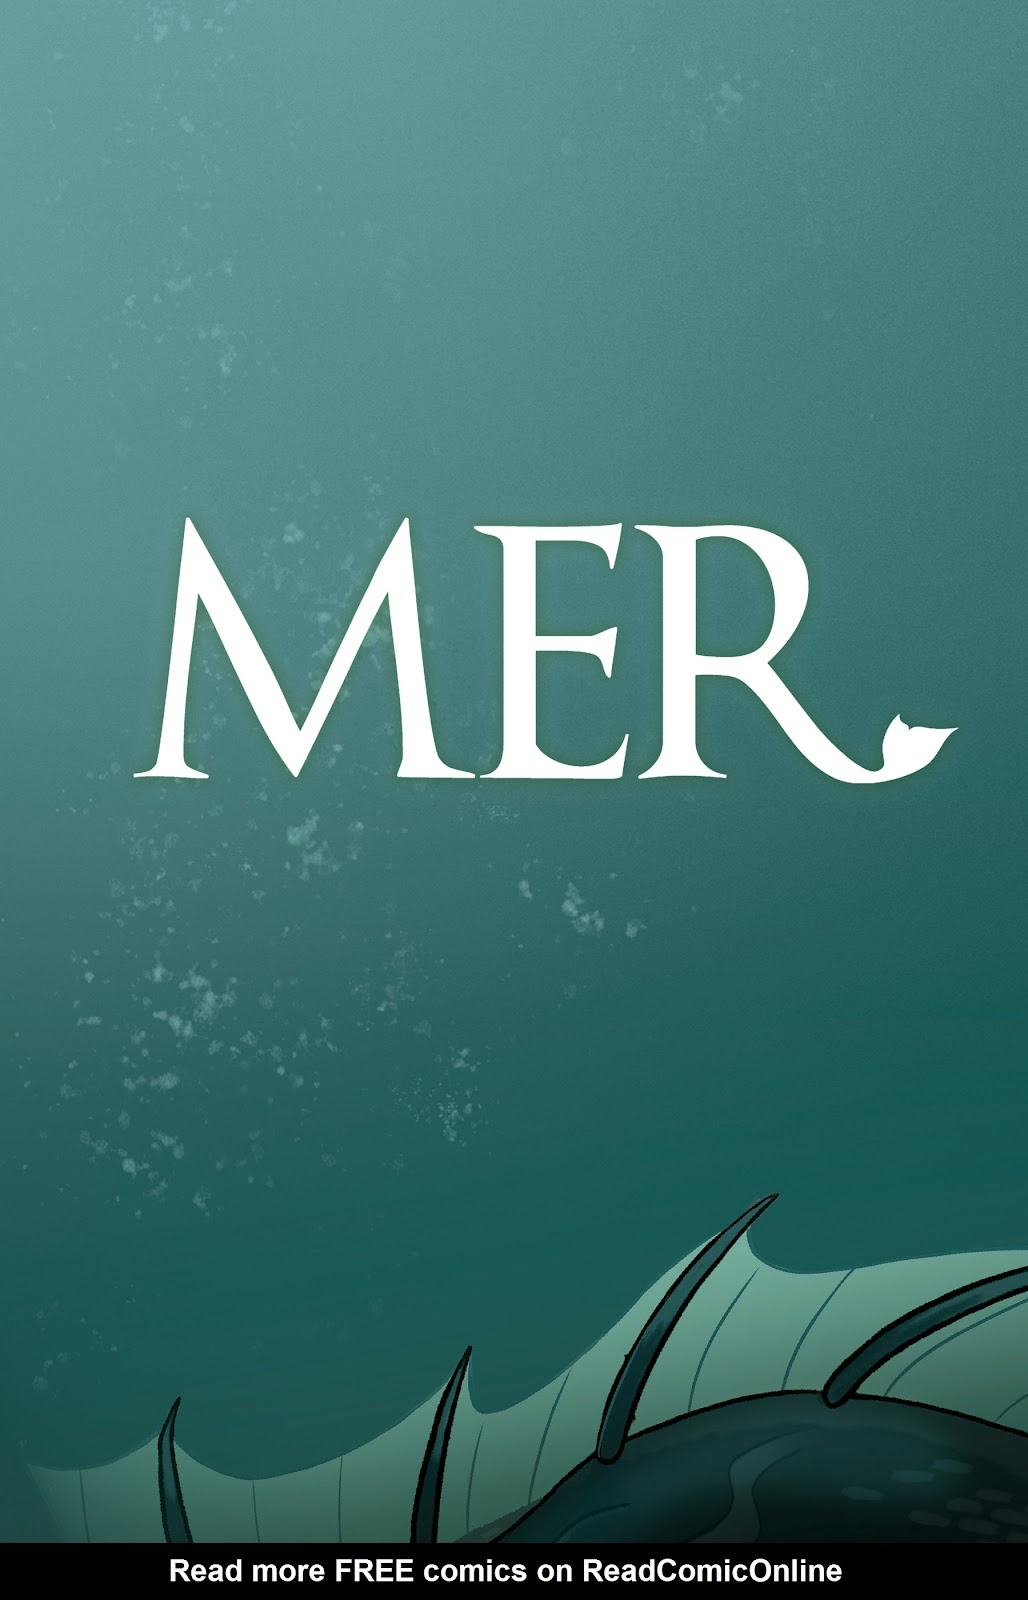 Read online Mer comic -  Issue # TPB - 4